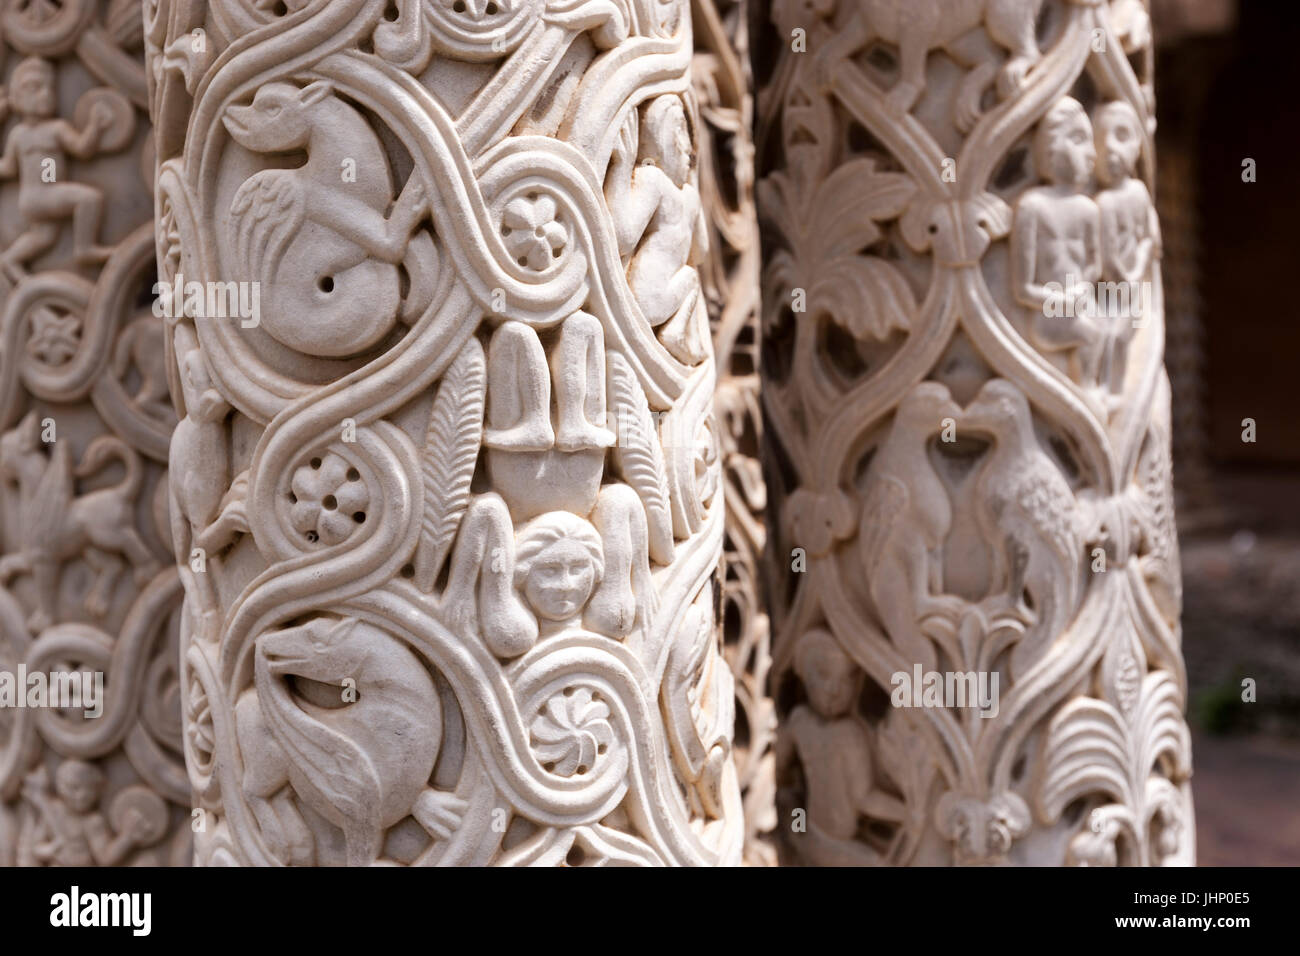 Monreale cathedral cloister carved column shaped like stylized palm stems, with figures standing, relief leaves. - Stock Image